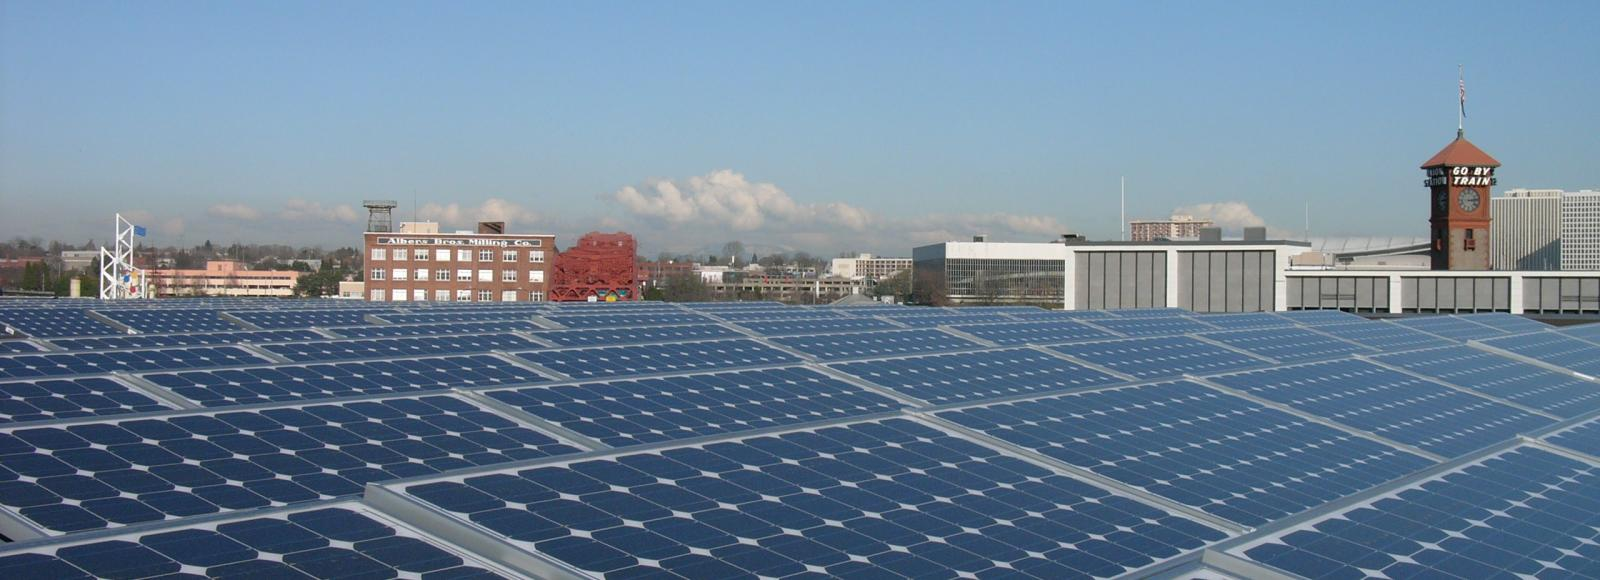 Solar panels on top of the roof of the NCC building in portland. go by train sigh visible.